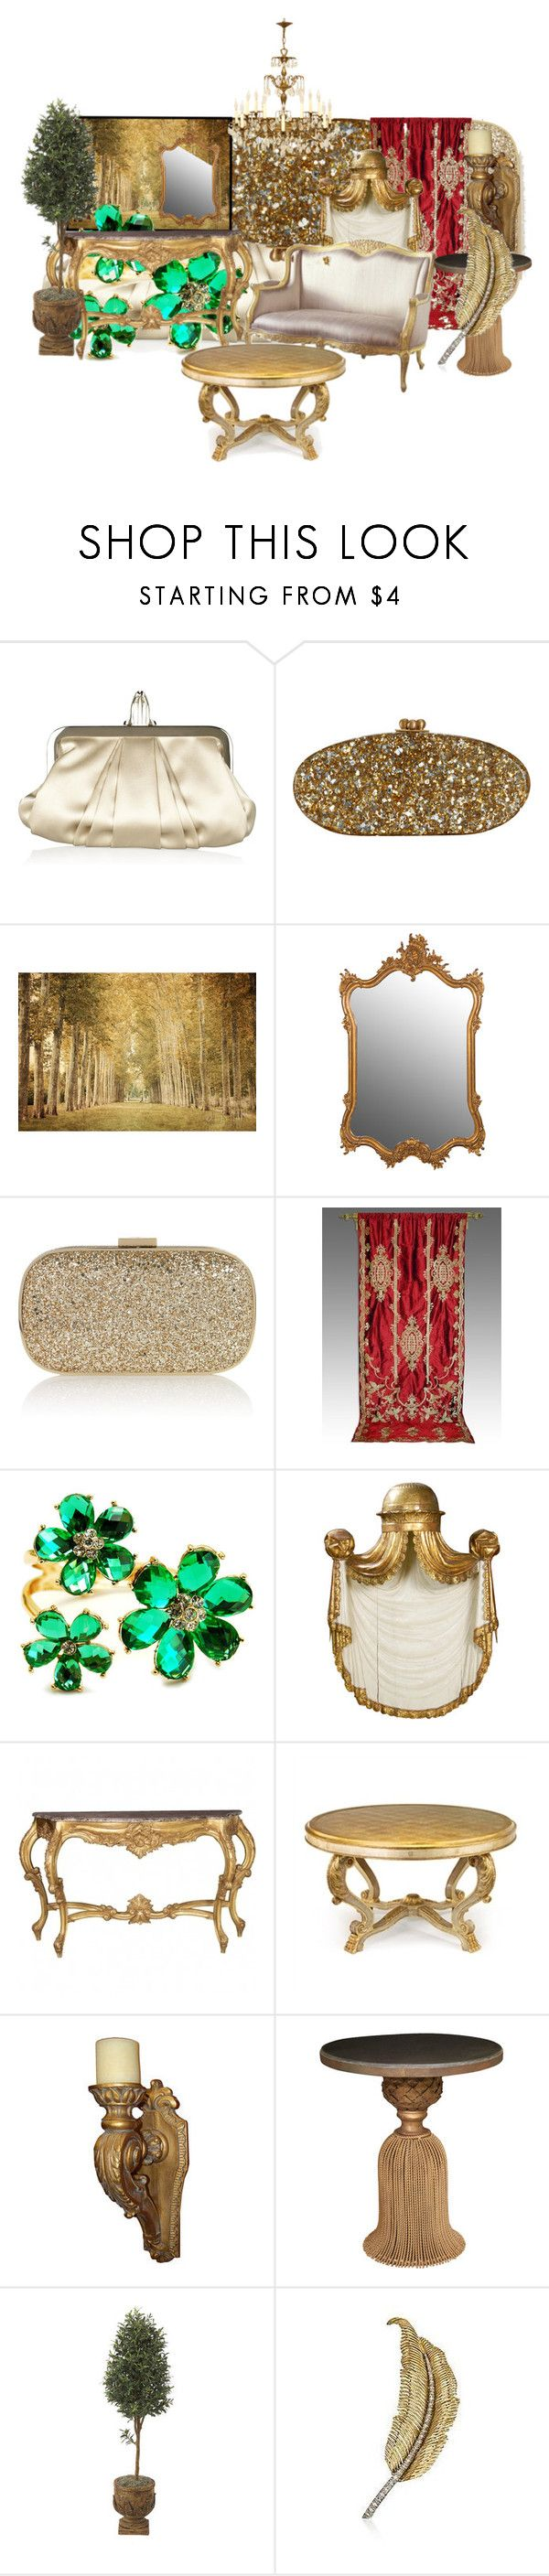 """""""old world charm"""" by ririrara ❤ liked on Polyvore featuring Christian Louboutin, Edie Parker, WALL, Anya Hindmarch, INC International Concepts, Fantasy Jewelry Box, Trianon, John-Richard and furniture"""